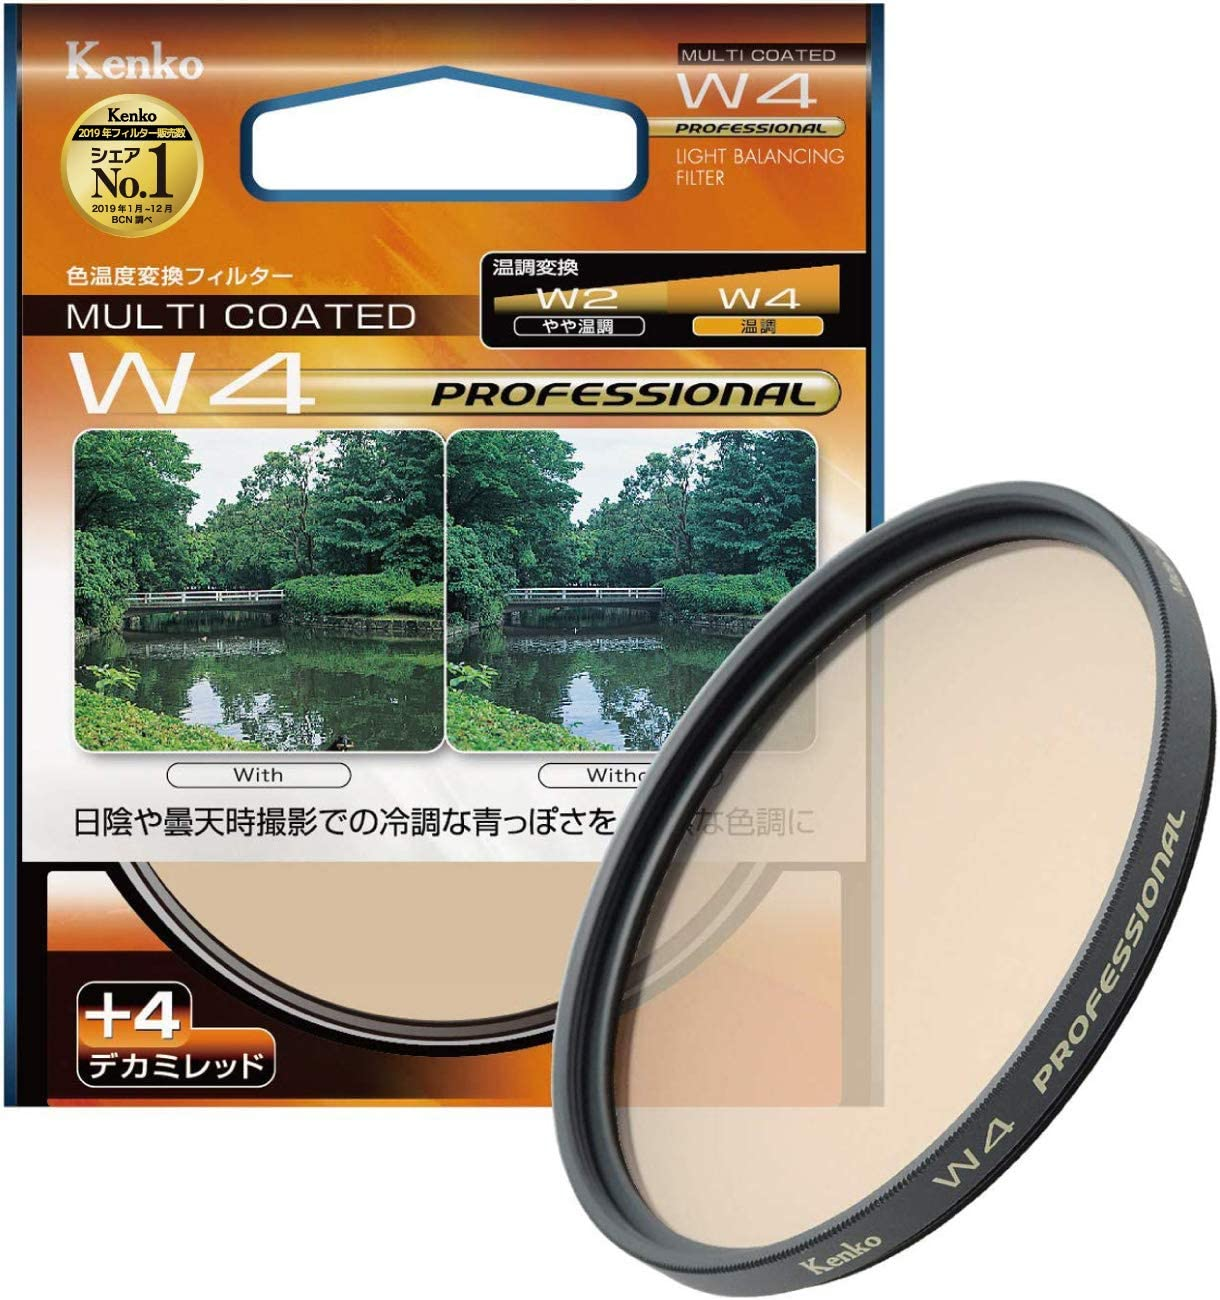 Kenko 72mm C2 Professional Multi-Coated Camera Lens Filters